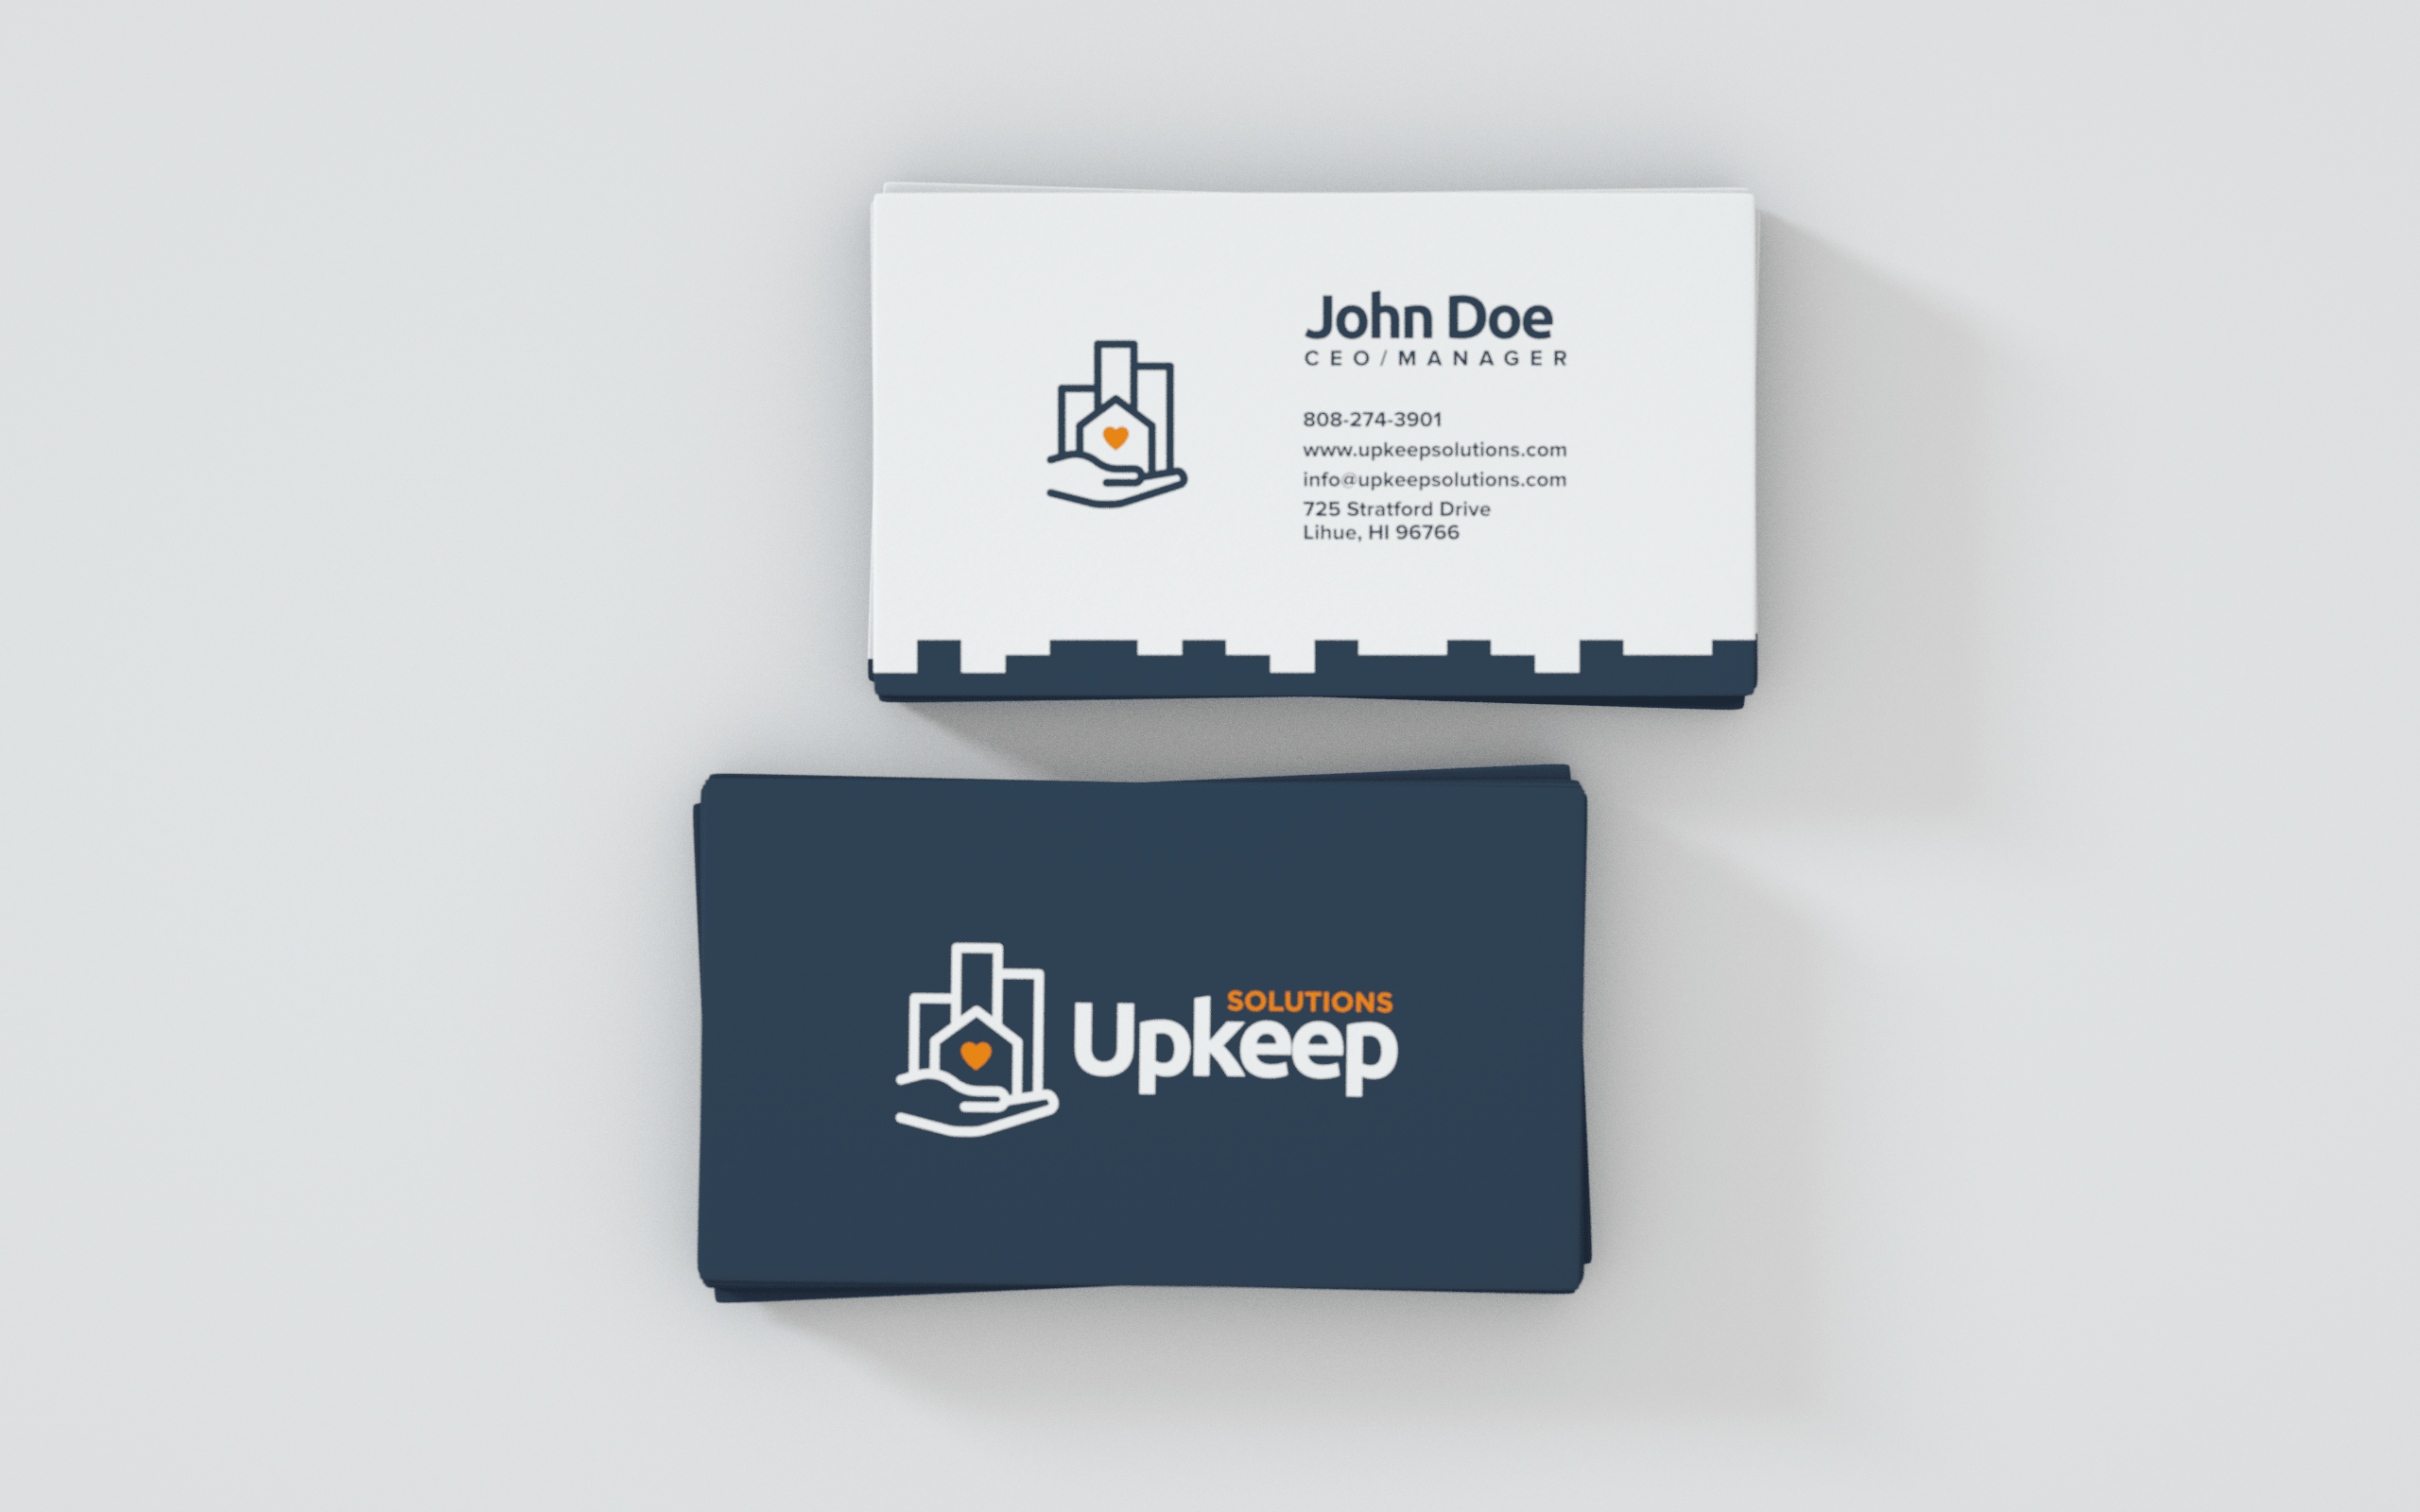 UPKEEP SOLUTIONS BUSINESS CARD